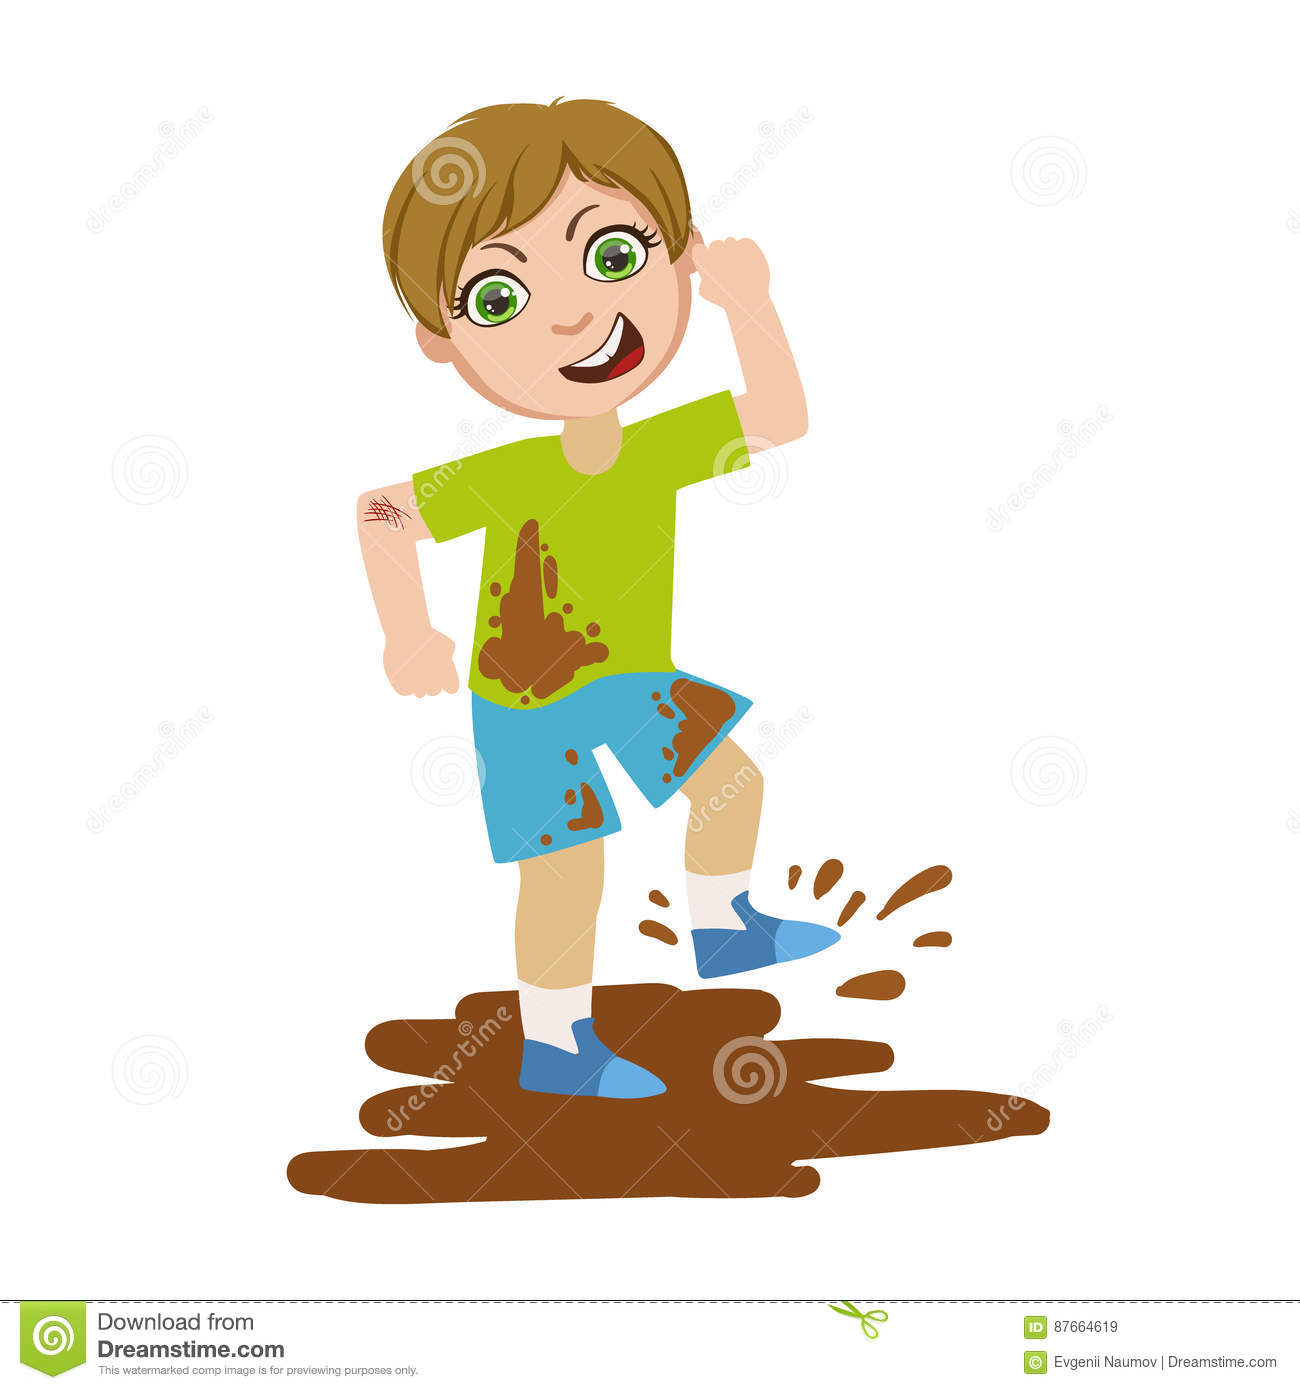 Boy Jumping In Dirt, Part Of Bad Kids Behavior And Bullies Series Of Vector Illustrations With Characters Being Rude And